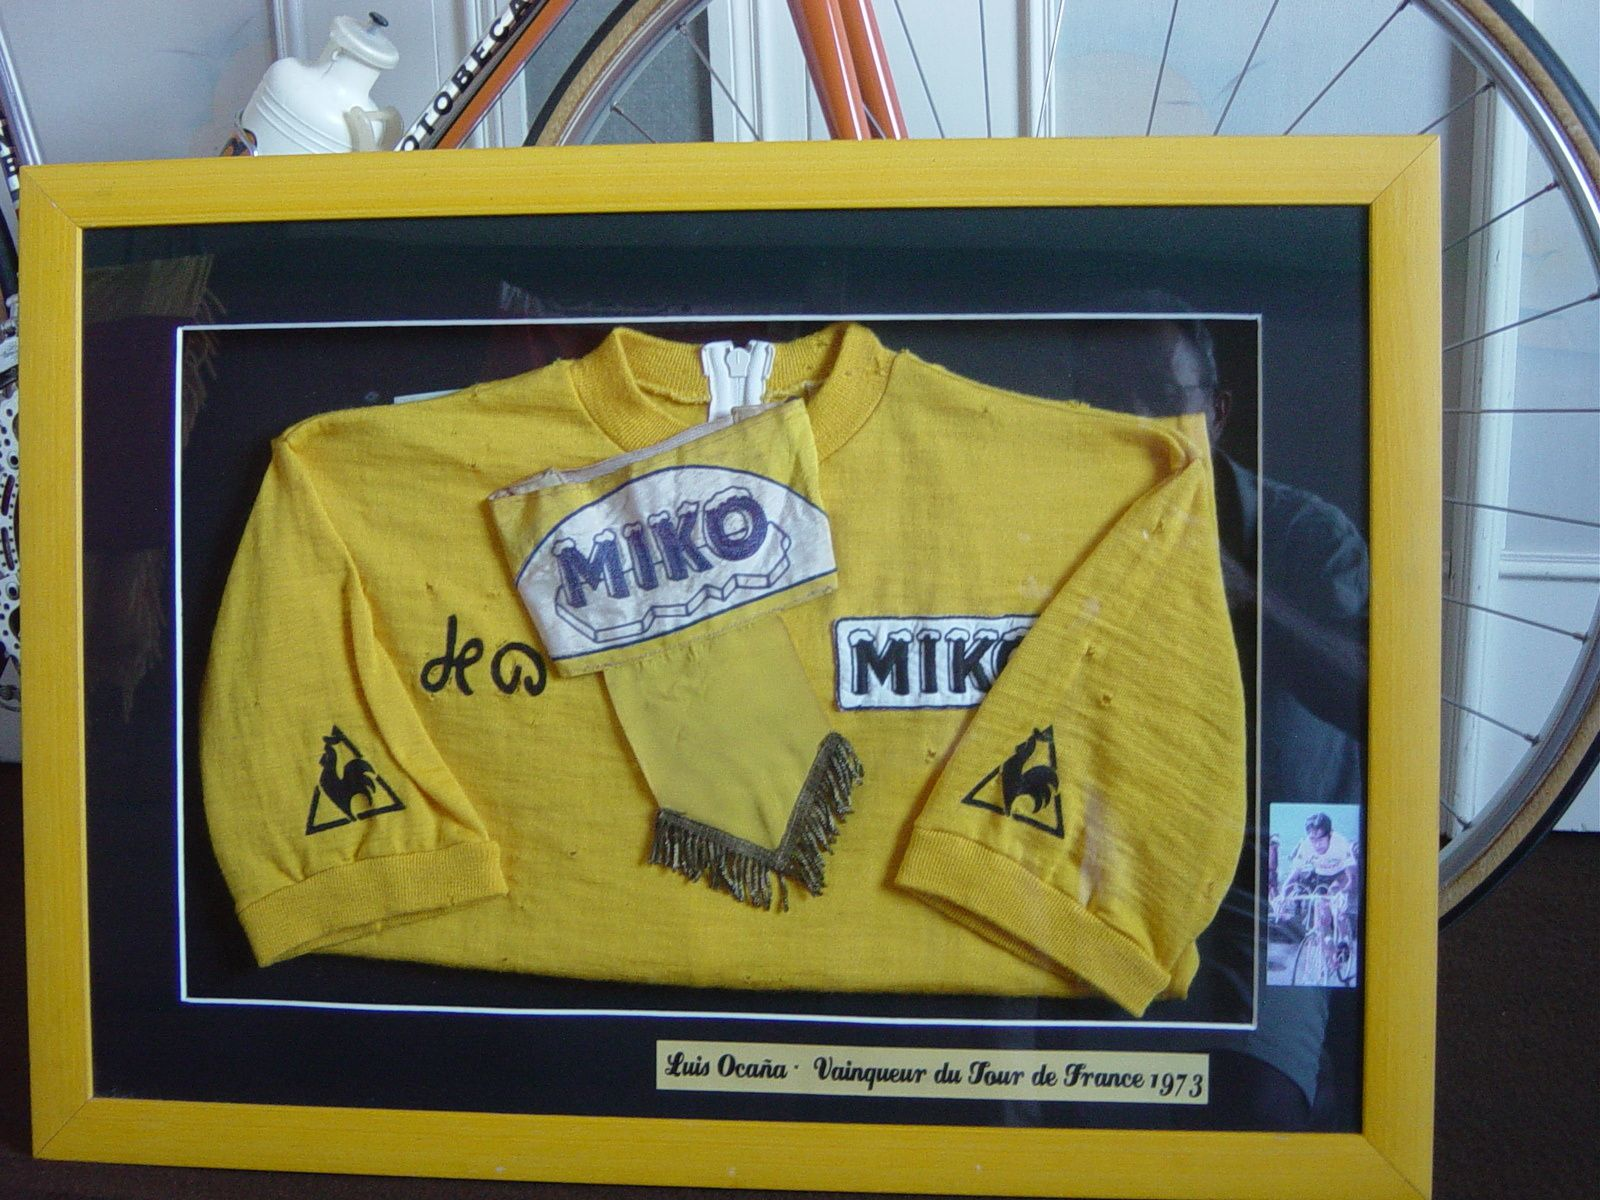 Maillot jaune du podium Tour de France 1973 remis à Paris.